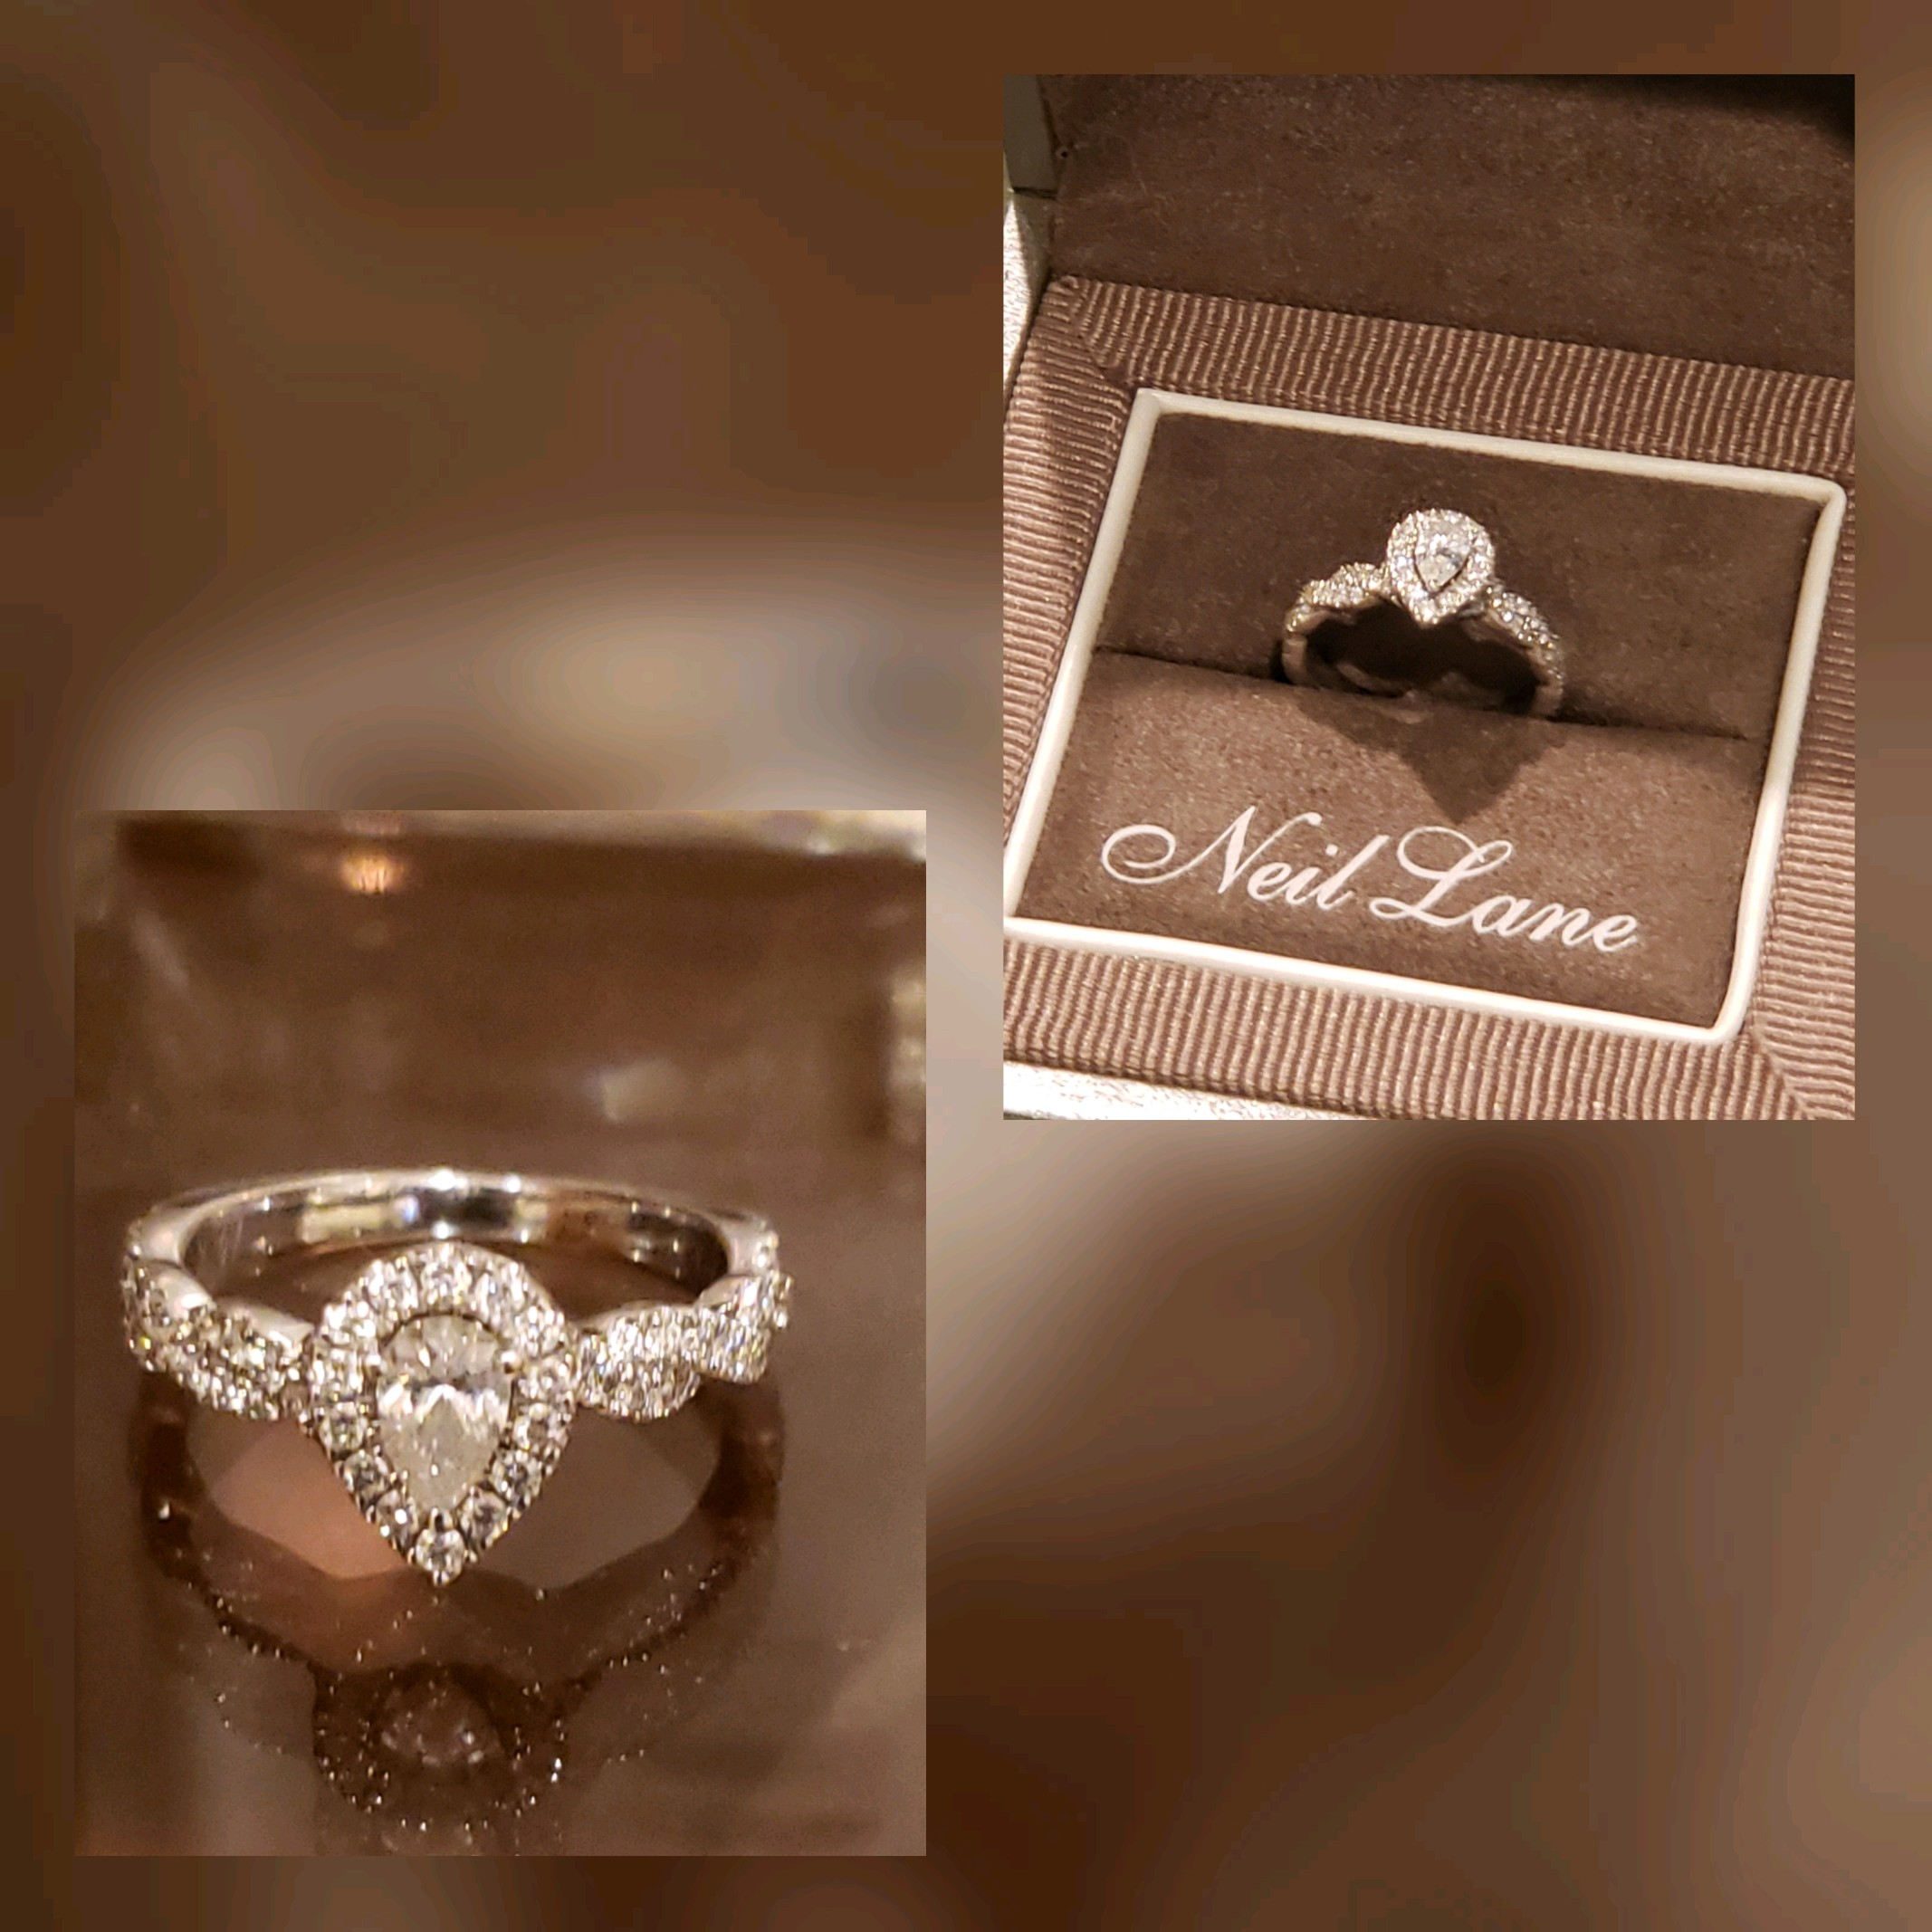 78a61d0a9 Neil Lane Pear Cut Diamond with Halo Bridal Set 7/8 Carat TW | I Do ...